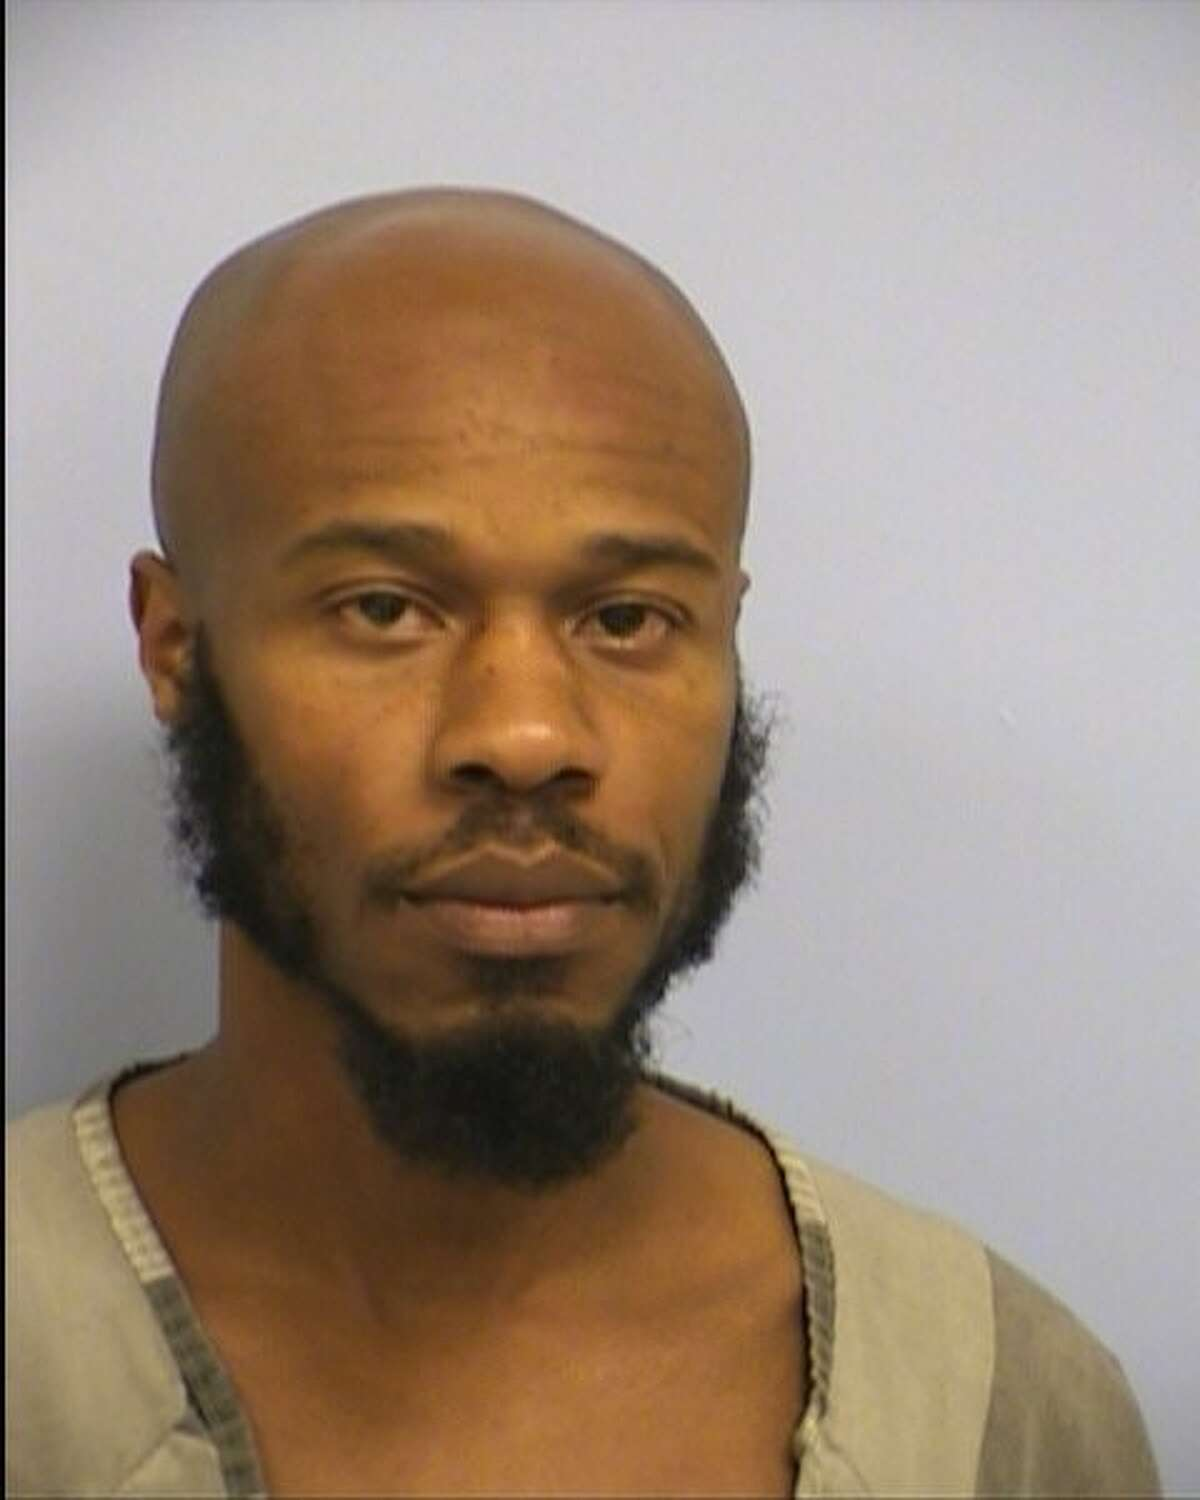 Jonathan Hightower, 31, is accused of public lewdness.